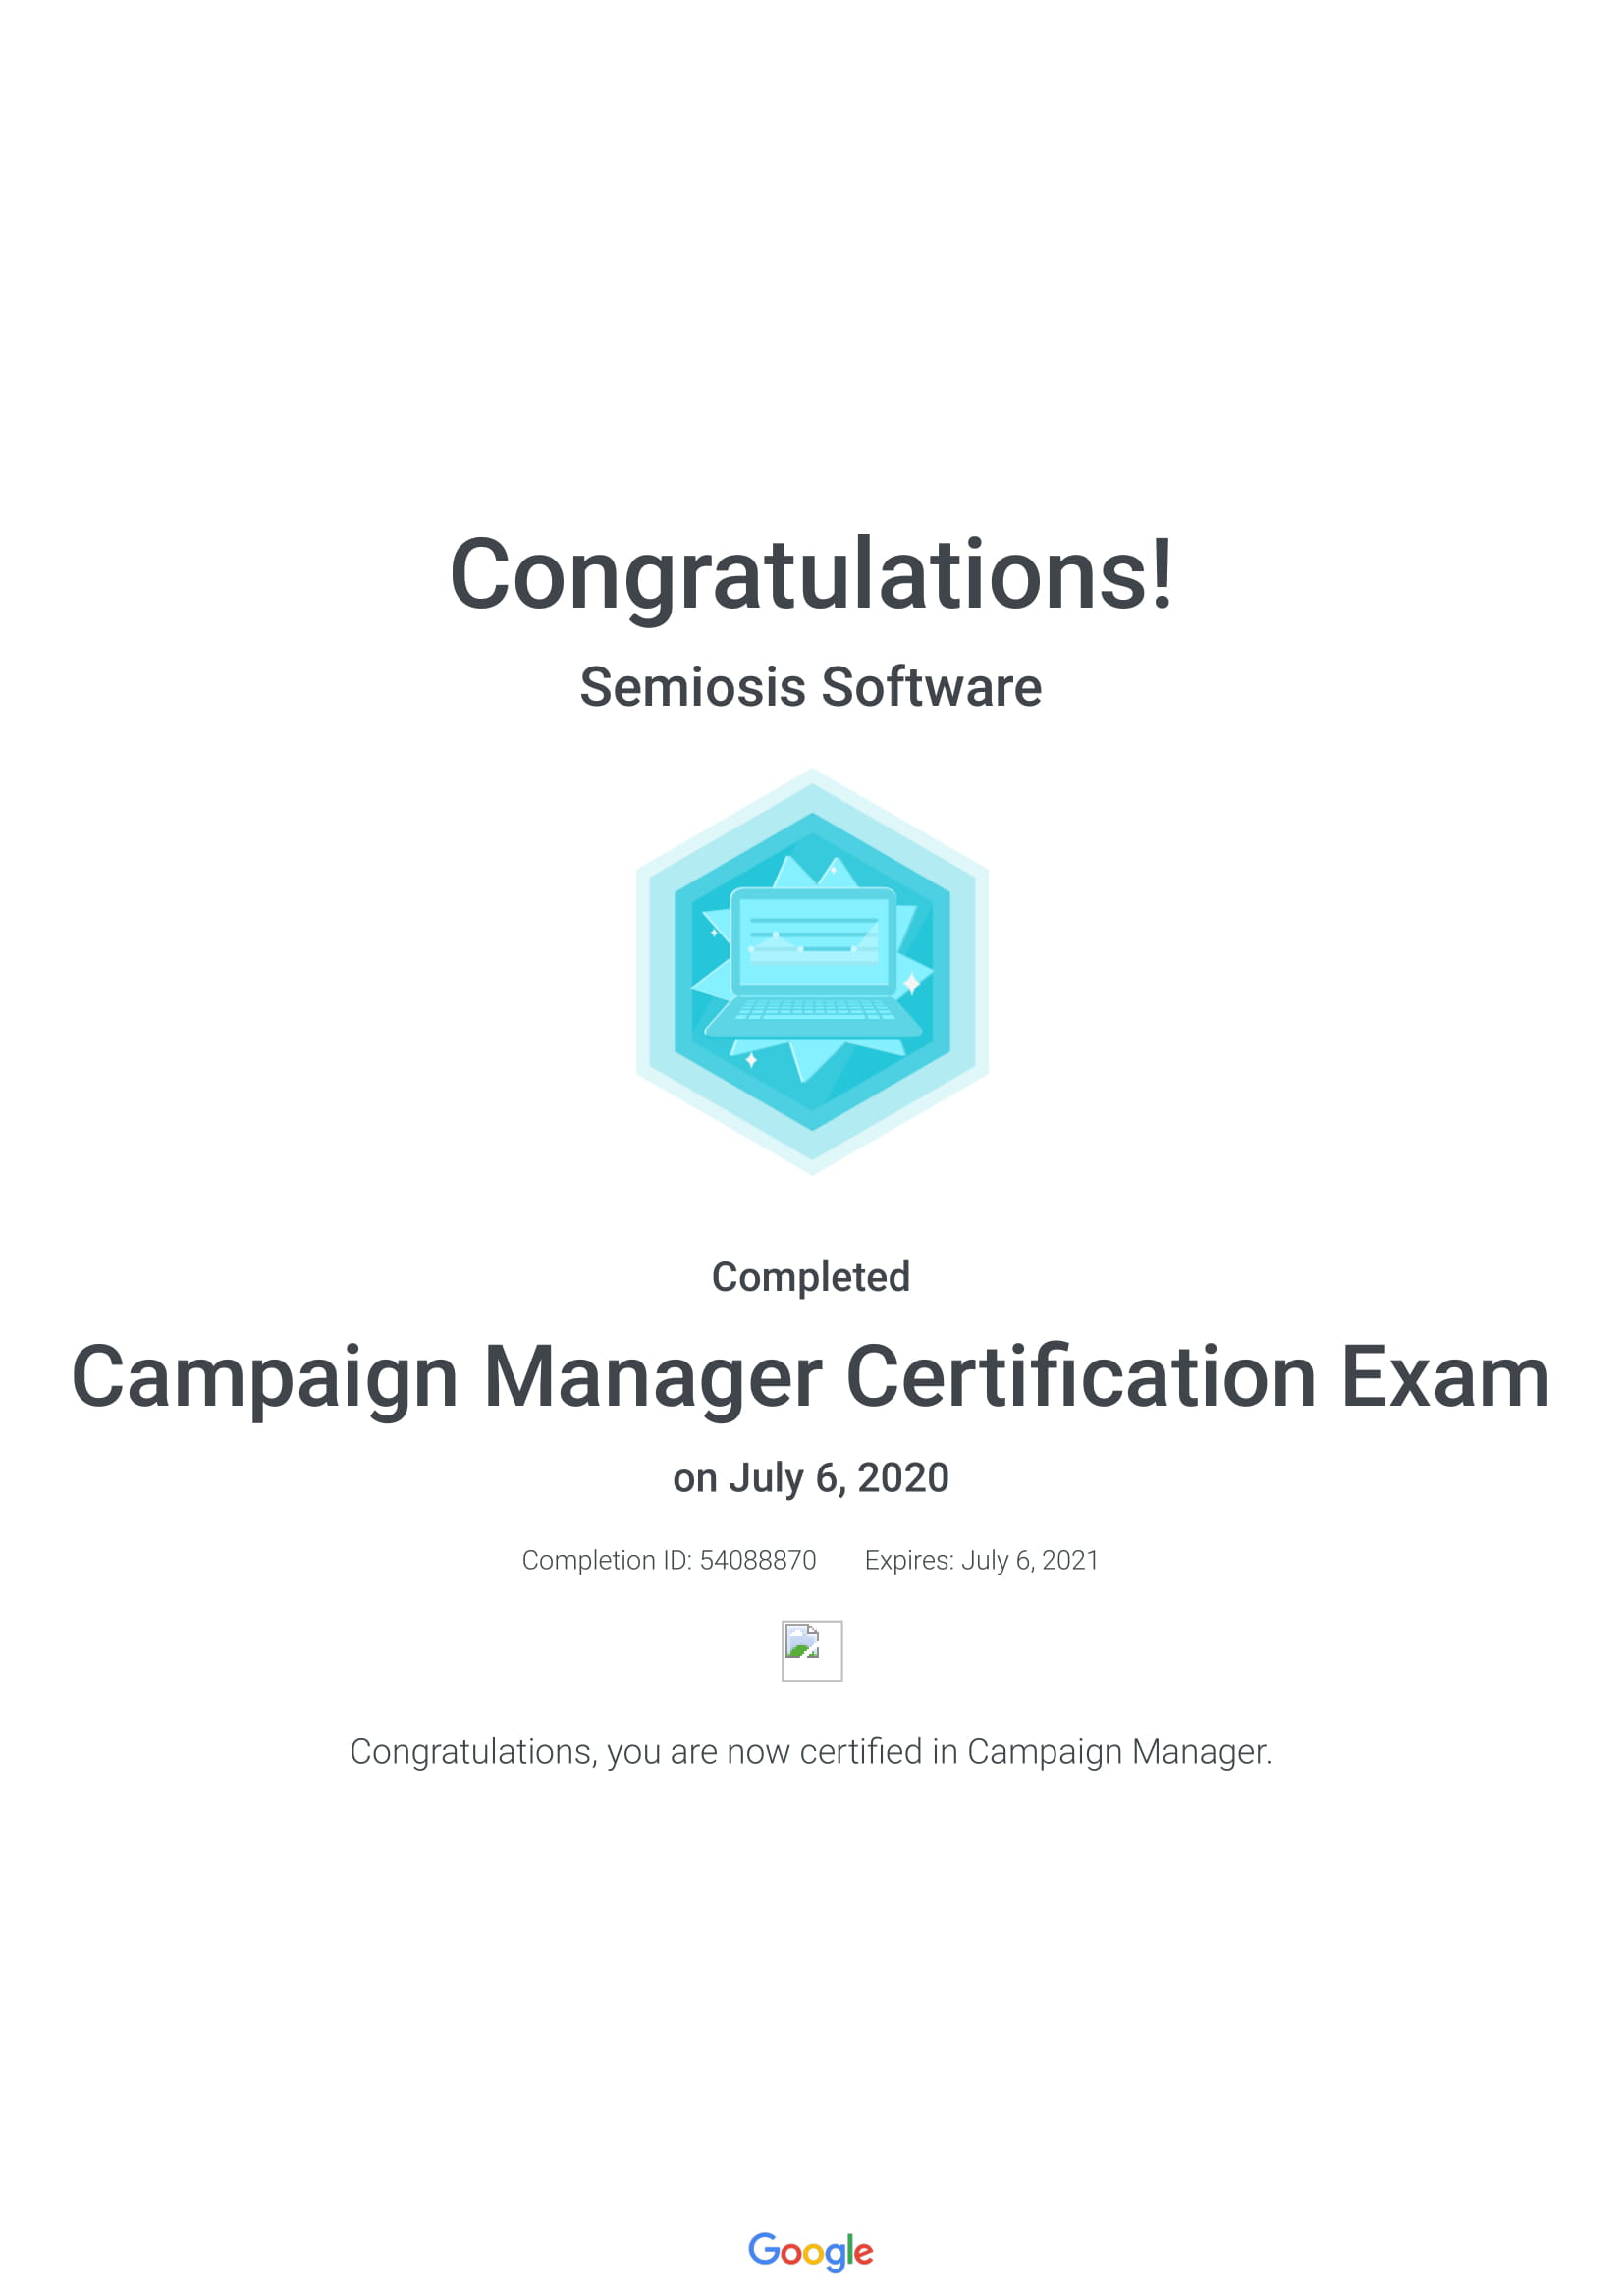 Campaign Manager Certification Exam